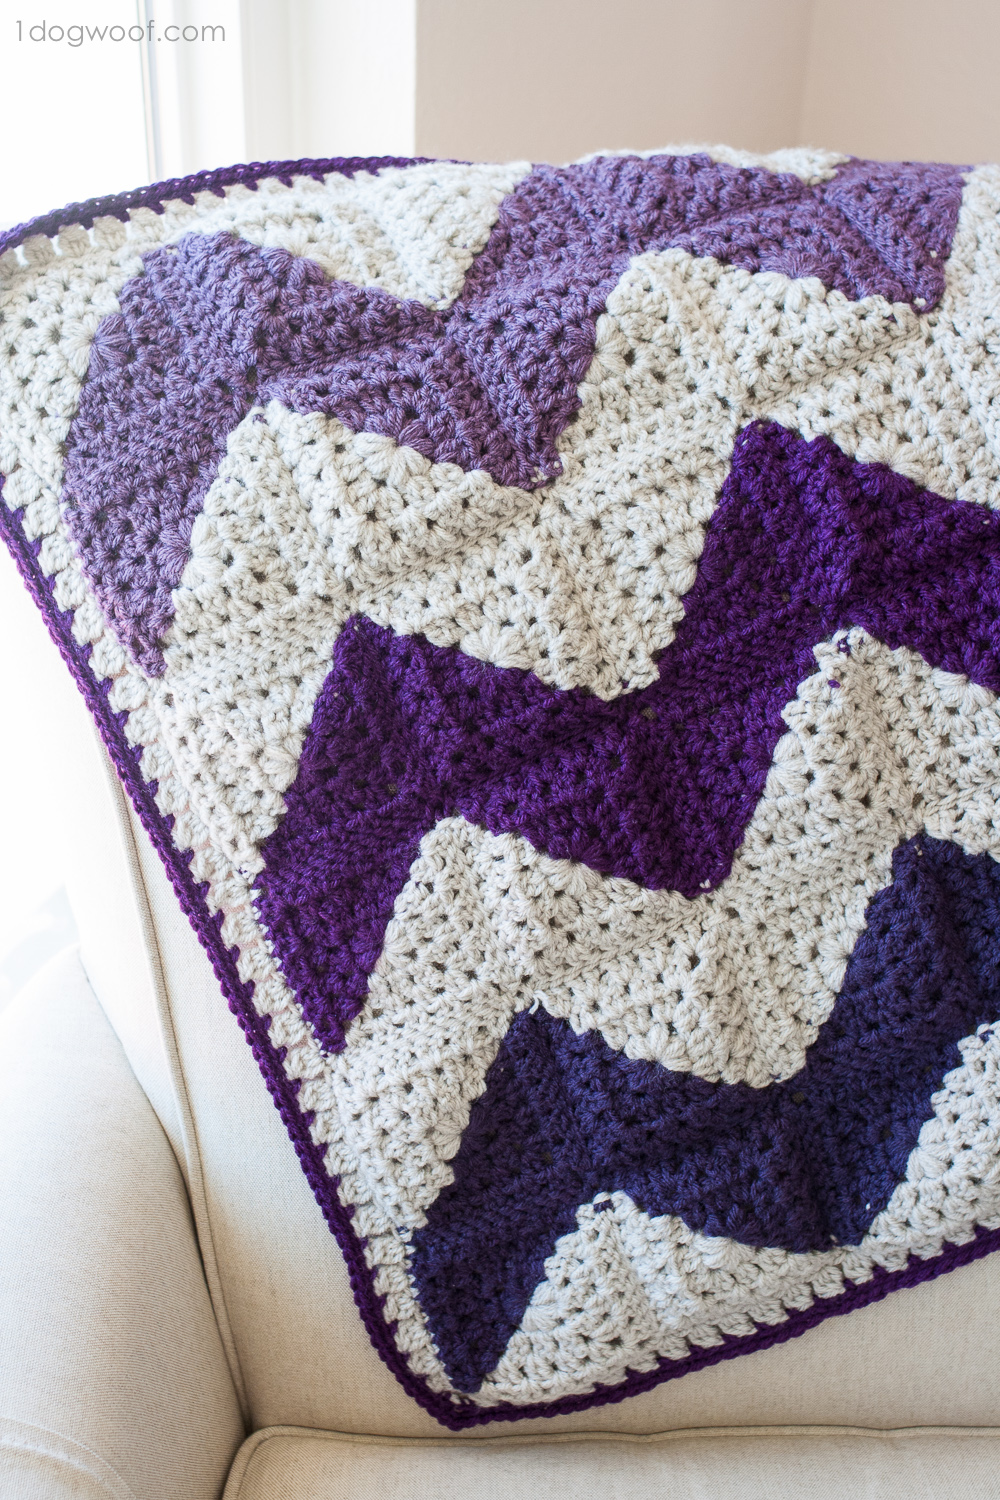 Granny Squares Chevron Afghan Crochet Pattern - One Dog Woof